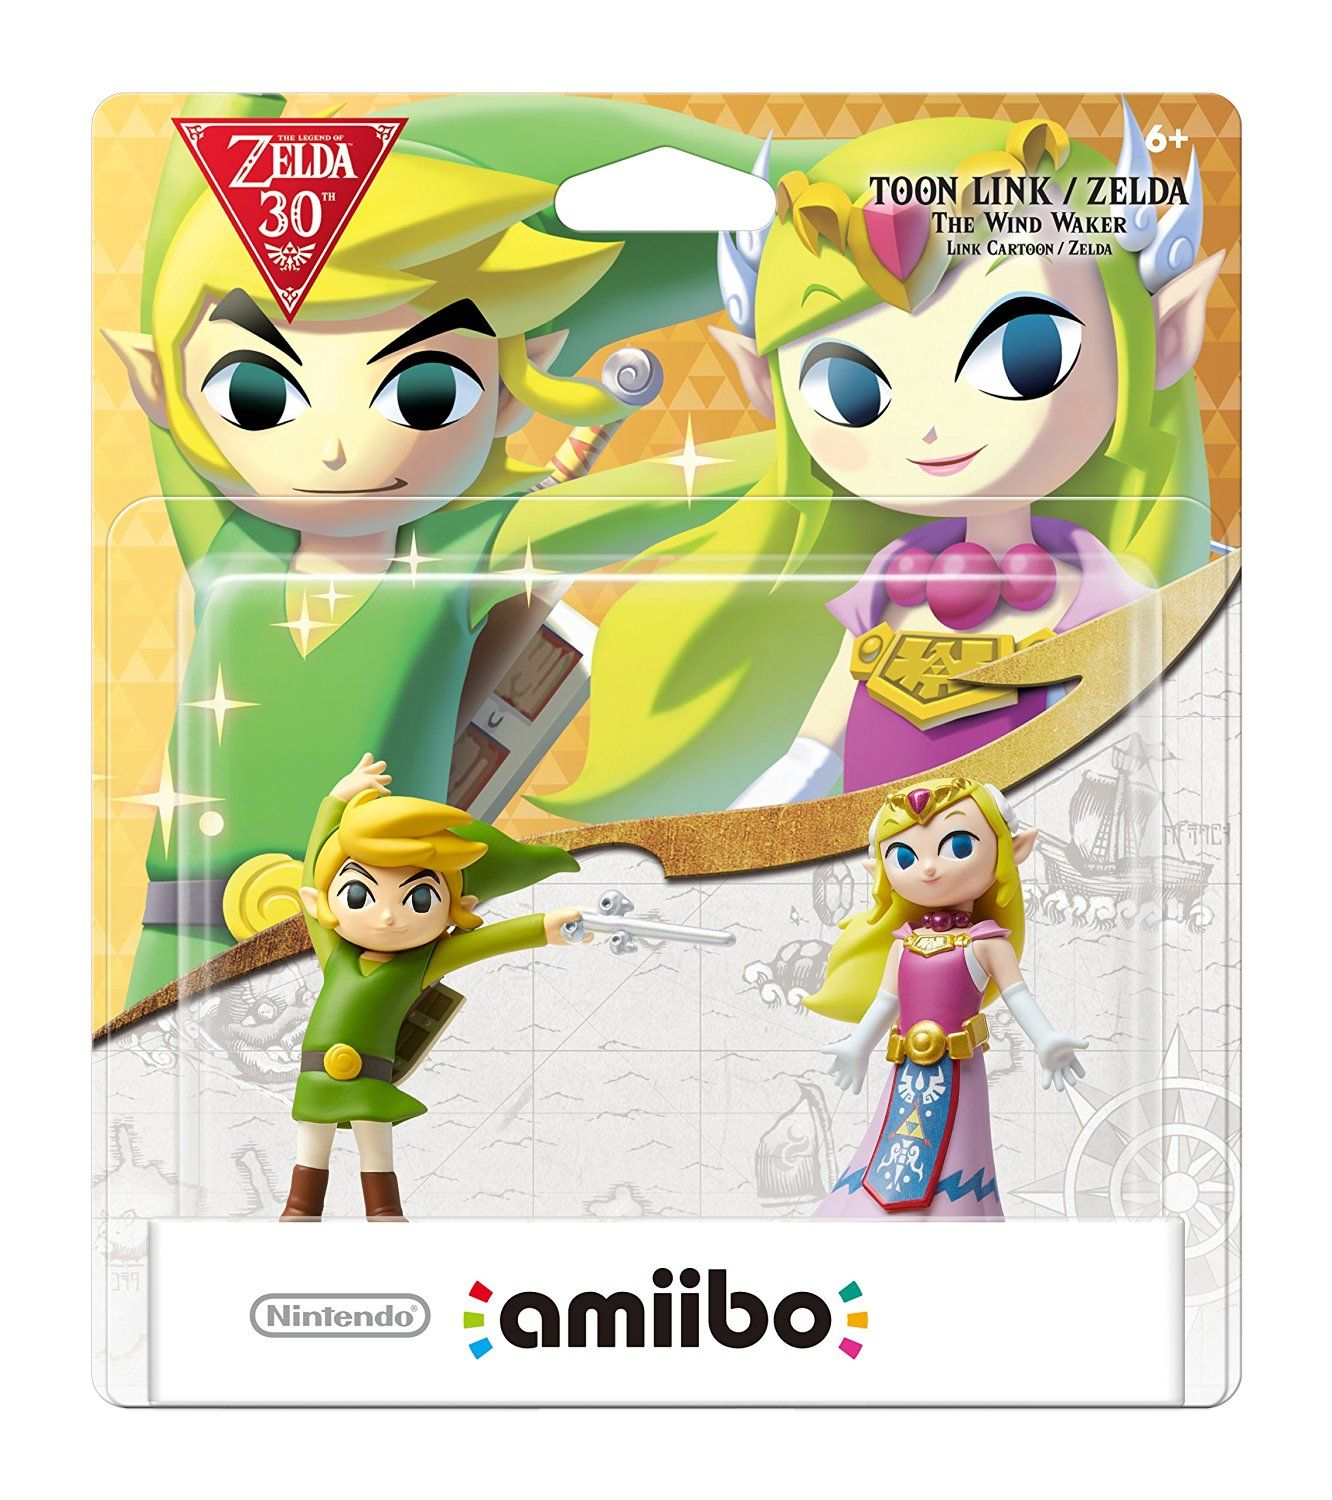 Nintendo Toon Link and Zelda : The Wind Waker amiibo 2-Pack - Nintendo Wii U http://amzn.to/2fLxC0W